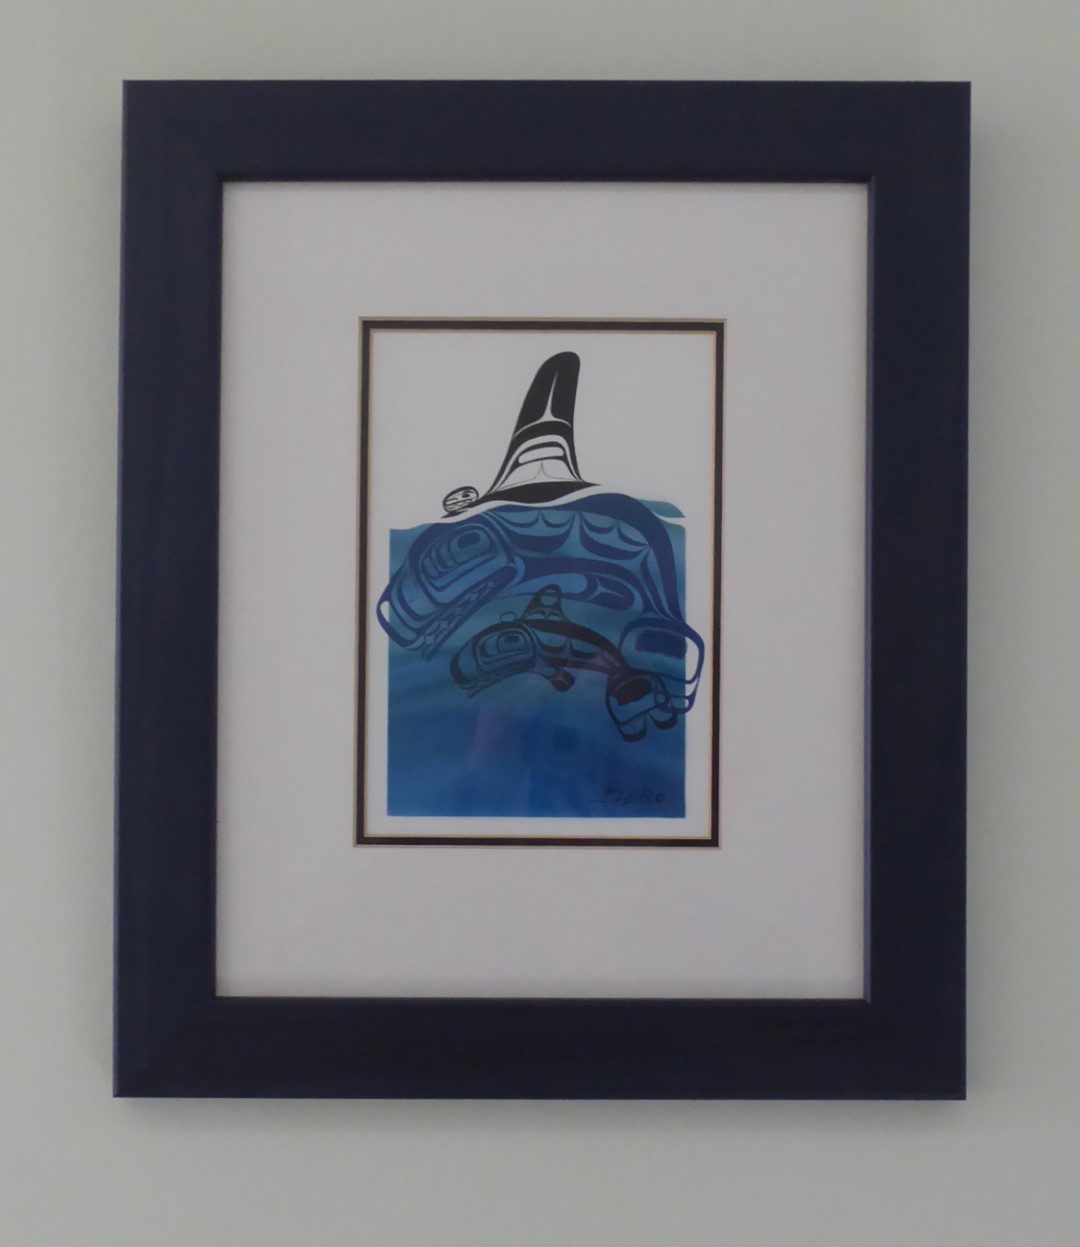 Stylised picture of whales